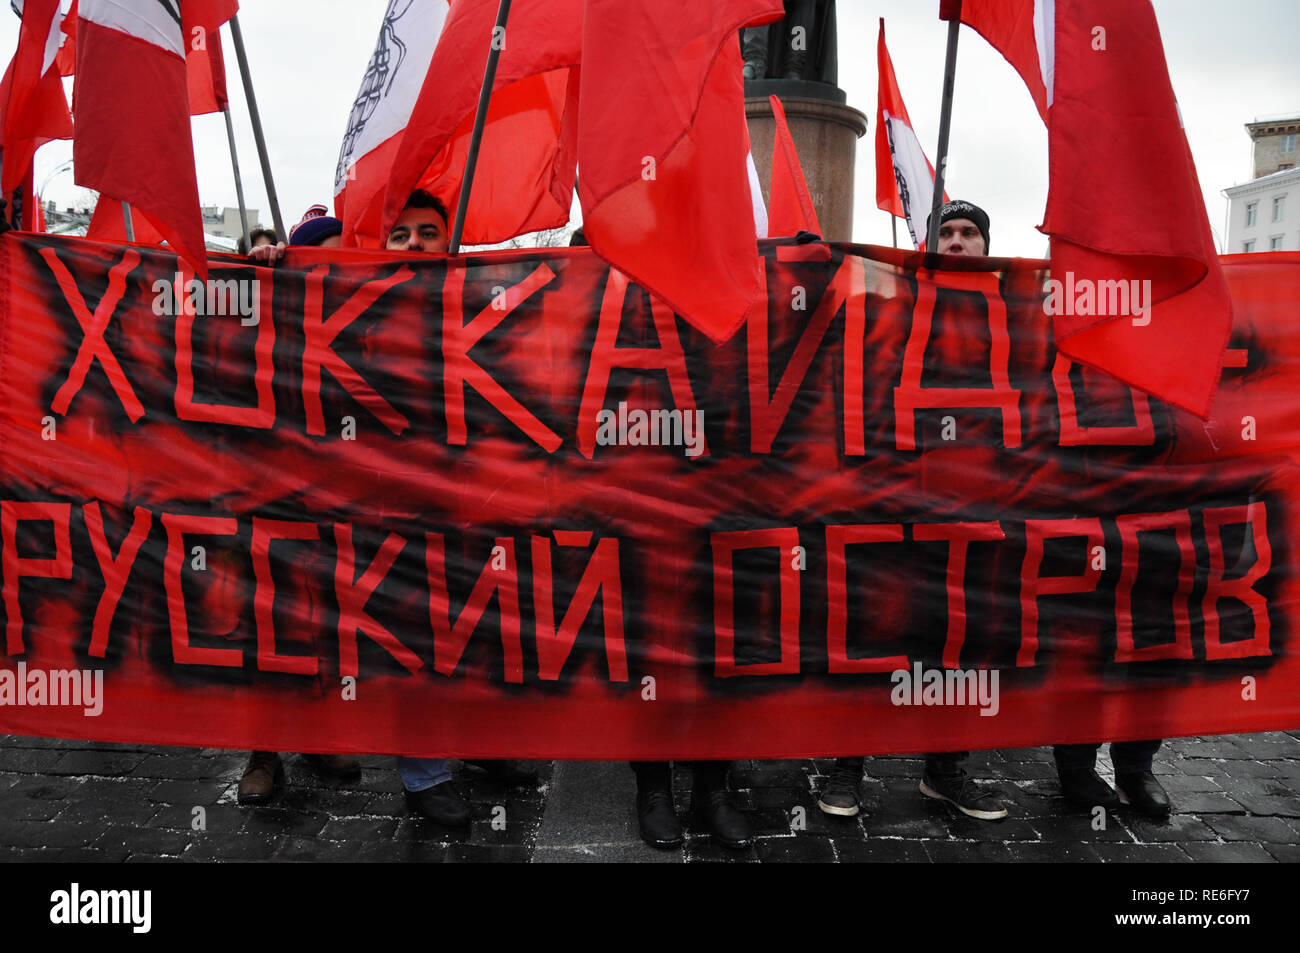 Moscow, Russia. 20th Jan, 2019. Activists are holding a banner that reads 'Hokkaido is a Russian island'. Hundreds from both left and right protest possible handover of contested Kuril islands (Northern territories) to Japan at a rally in central Moscow. Credit: Aleks Lokhmutov/Alamy Live News. - Stock Image